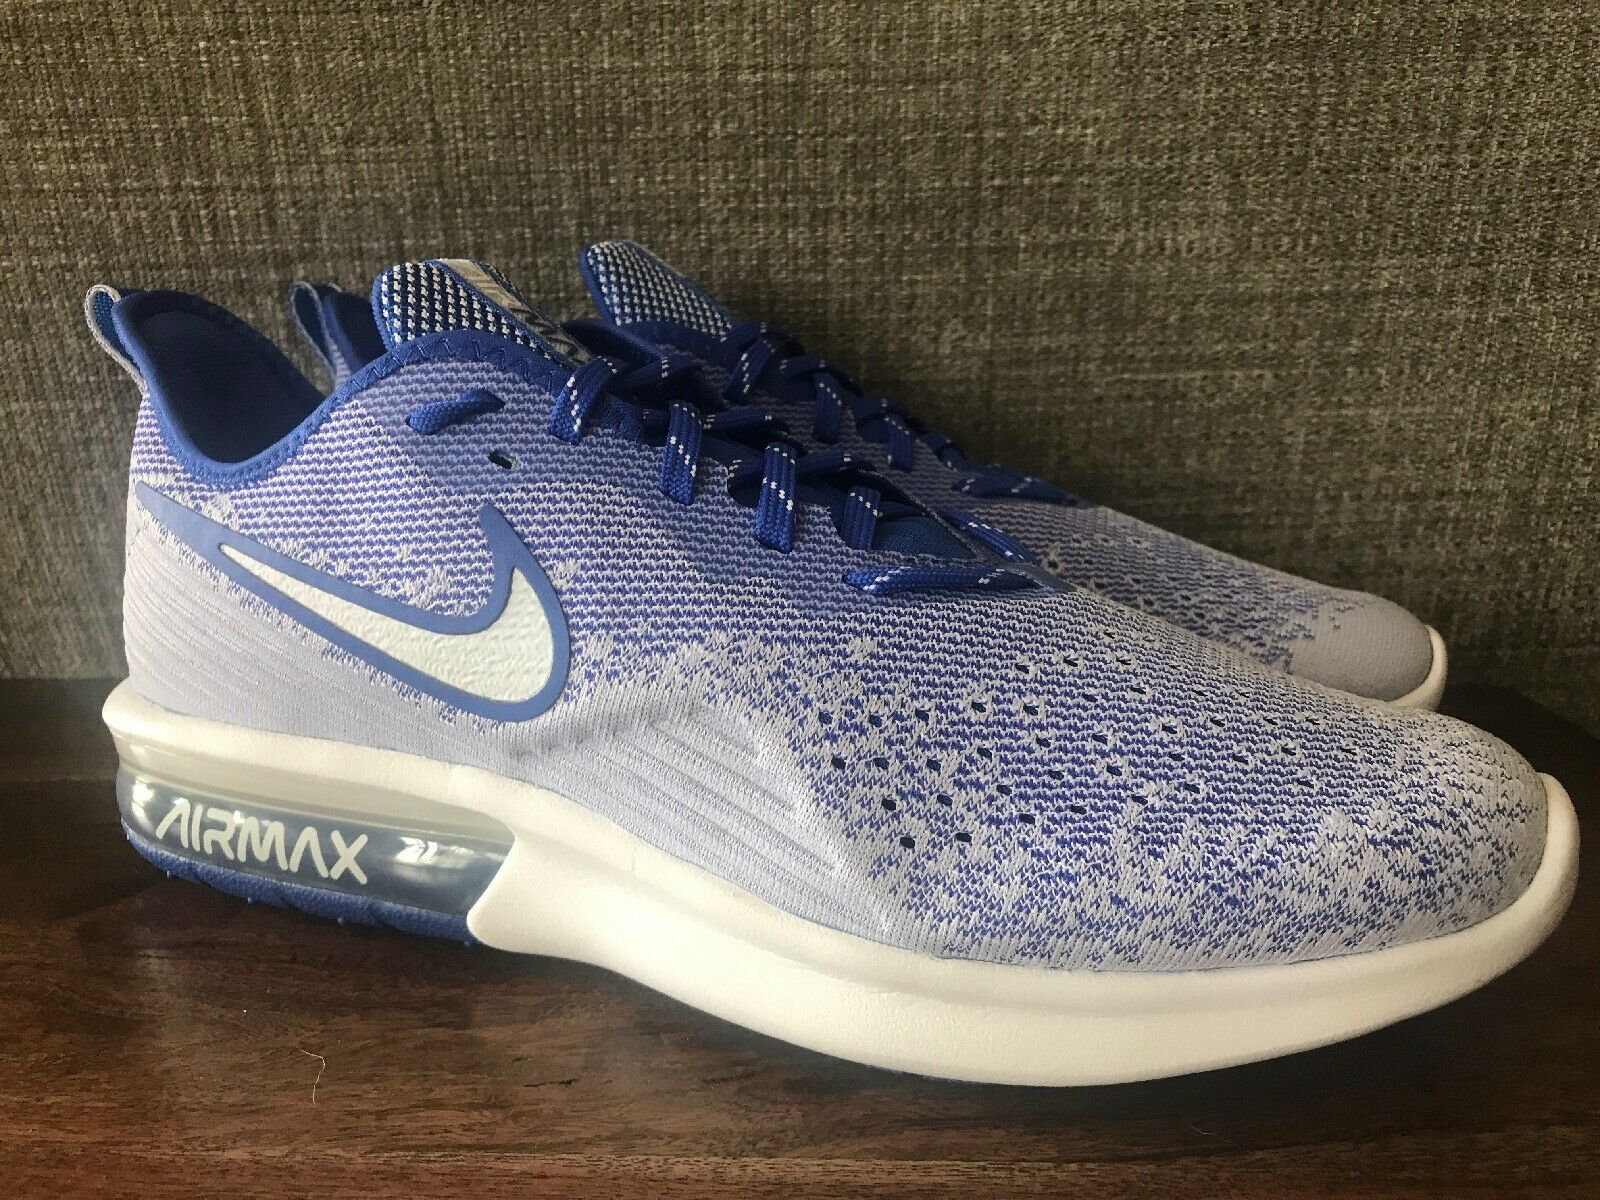 Nike Men's Air Max Sequent 4 Running shoes White blueee Size 10.5 AO4485-104